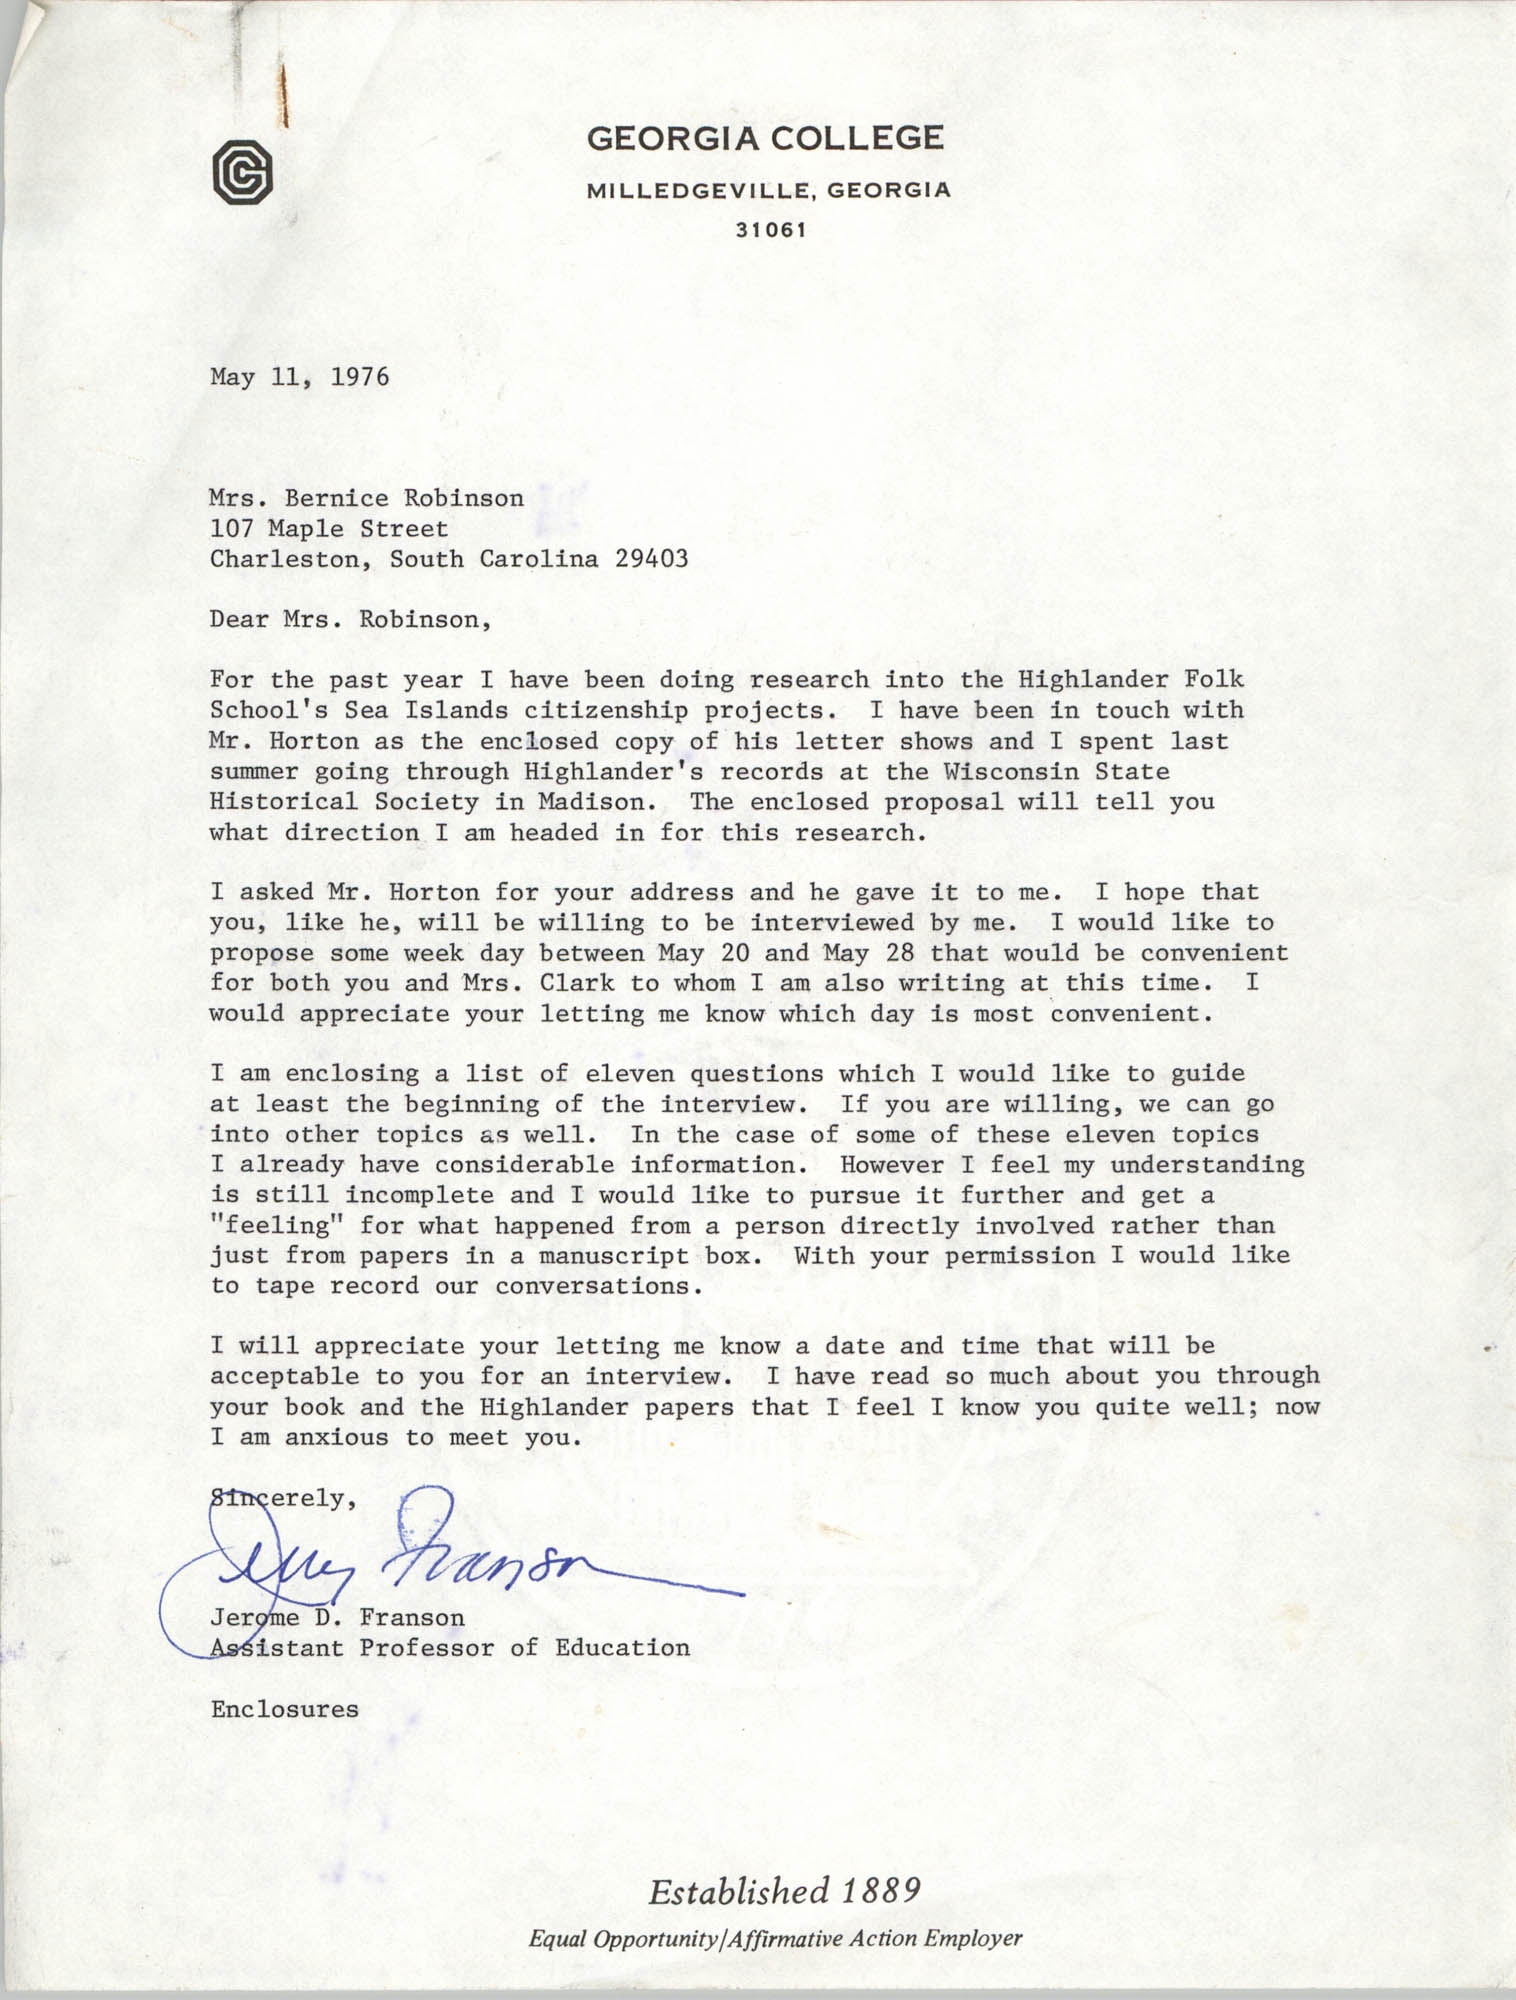 Letter from Jerome D. Franson to Bernice Robinson, Dissertation Proposal